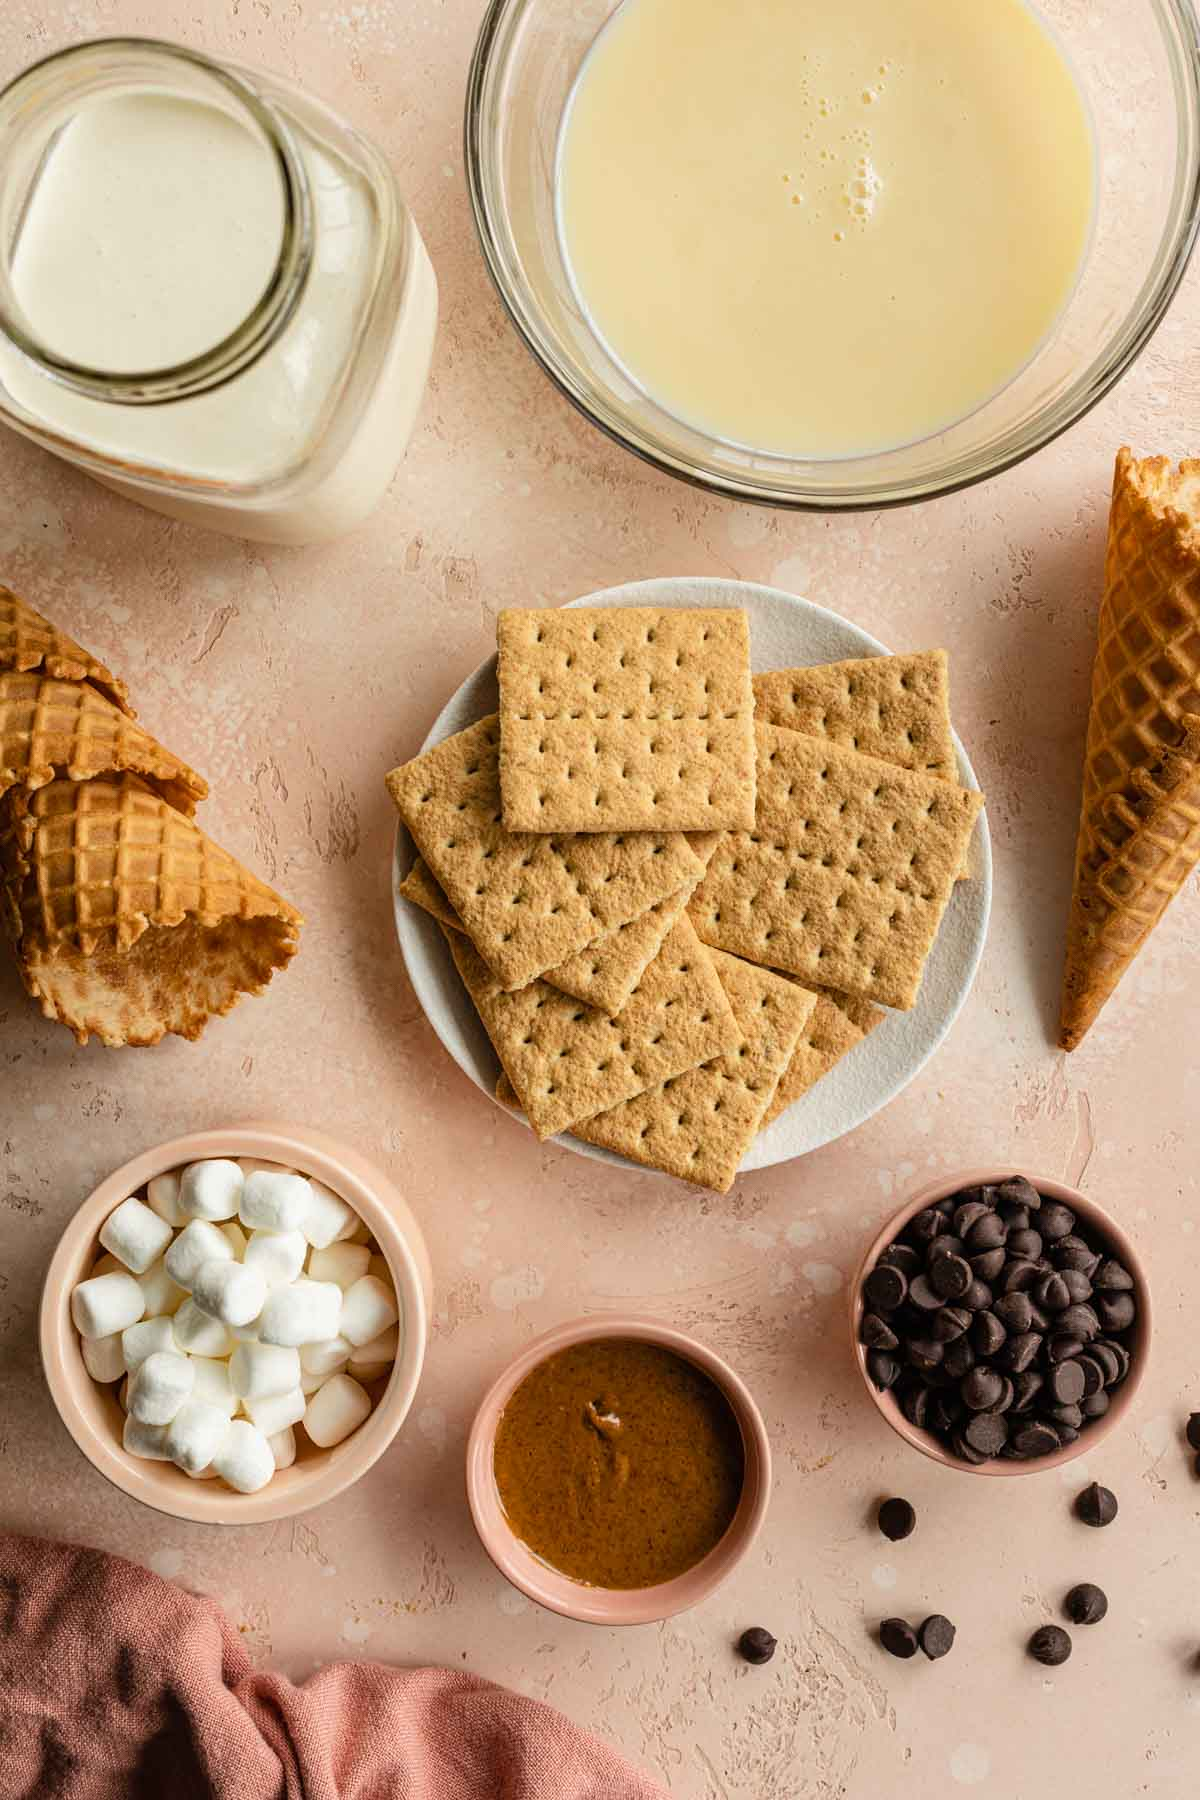 Ingredients to make s'mores ice cream arranged individually on a pink surface.